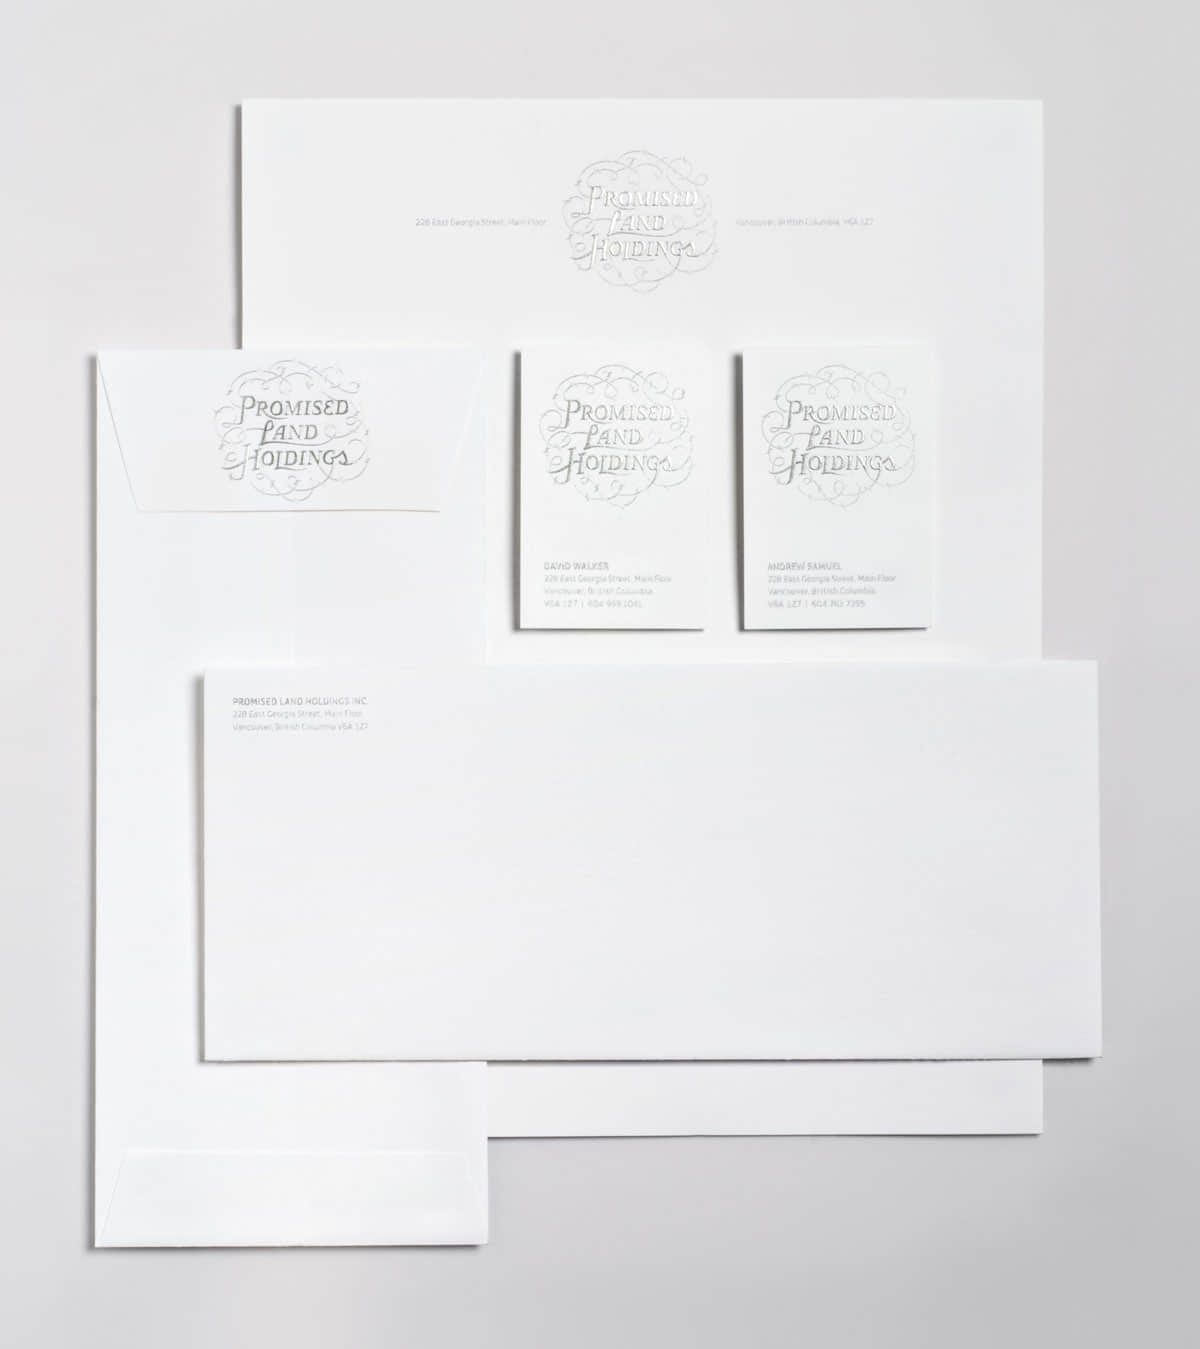 lovely-stationery-promised-land-holdings32